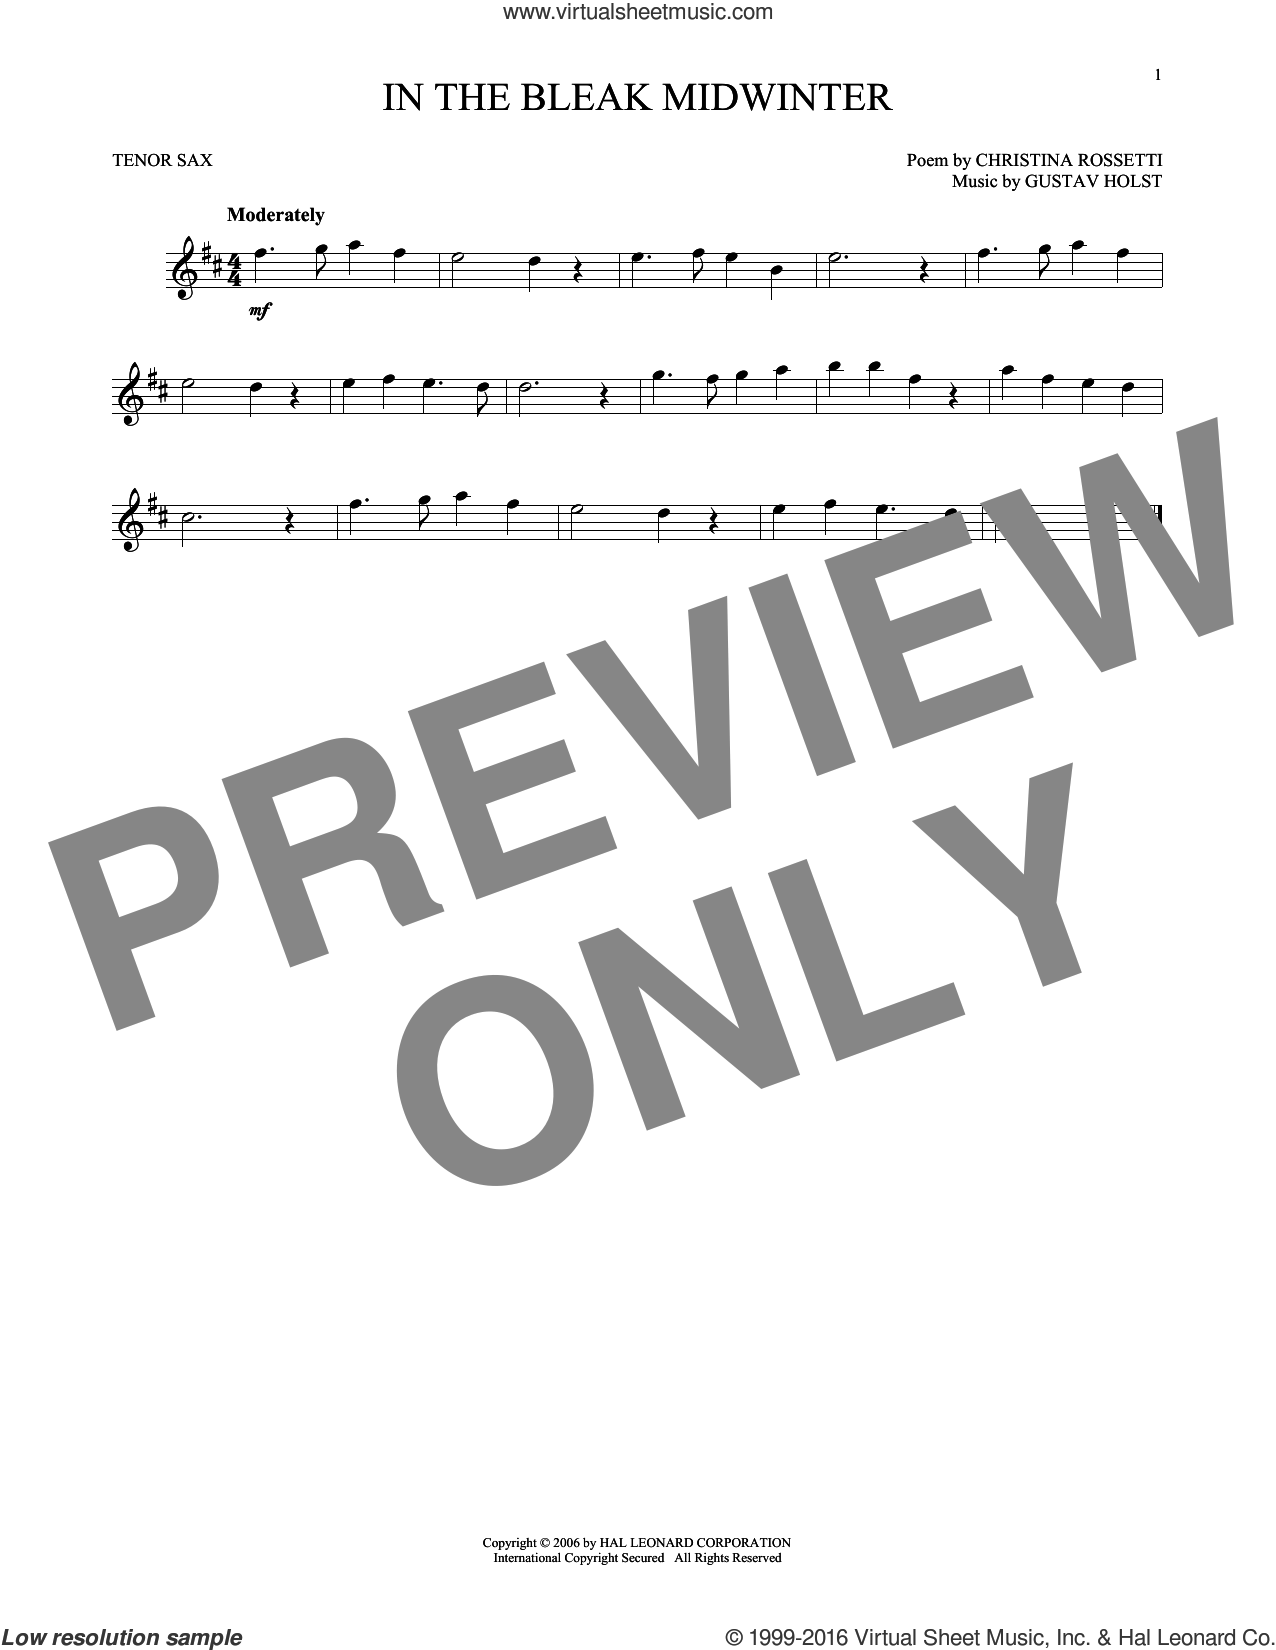 In The Bleak Midwinter sheet music for tenor saxophone solo by Gustav Holst and Christina Rossetti, intermediate skill level